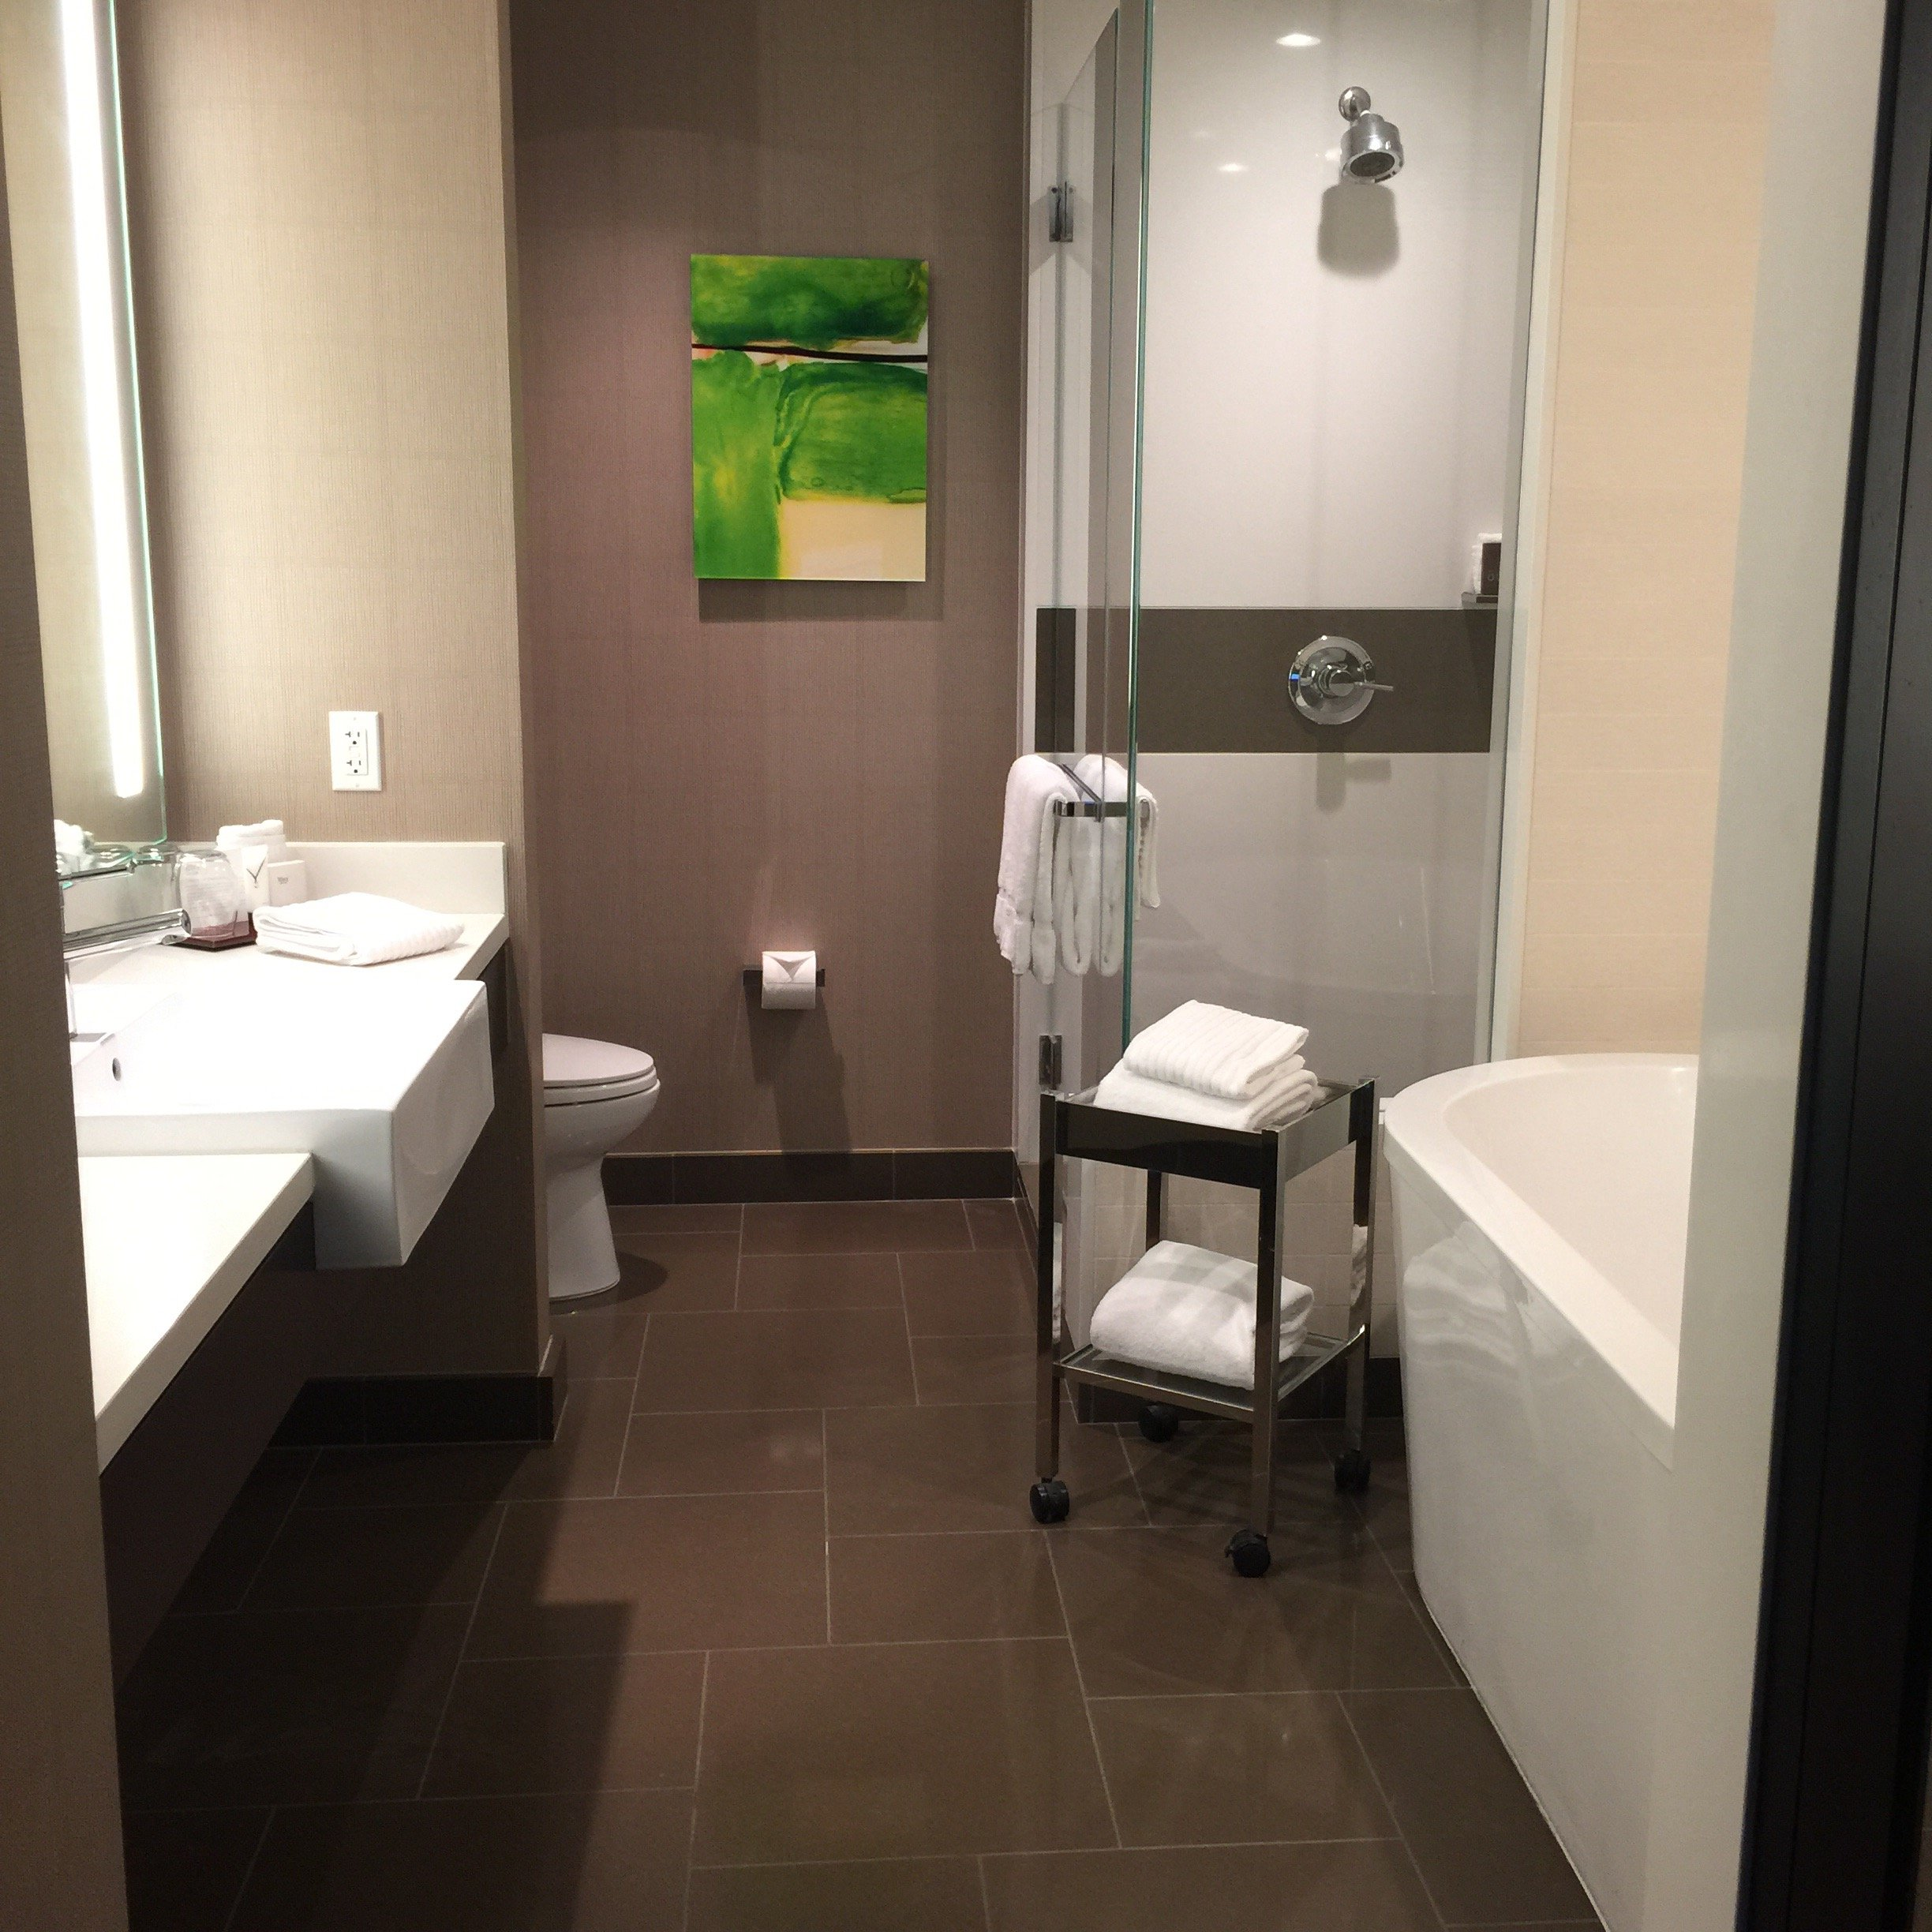 vdara room bathroom